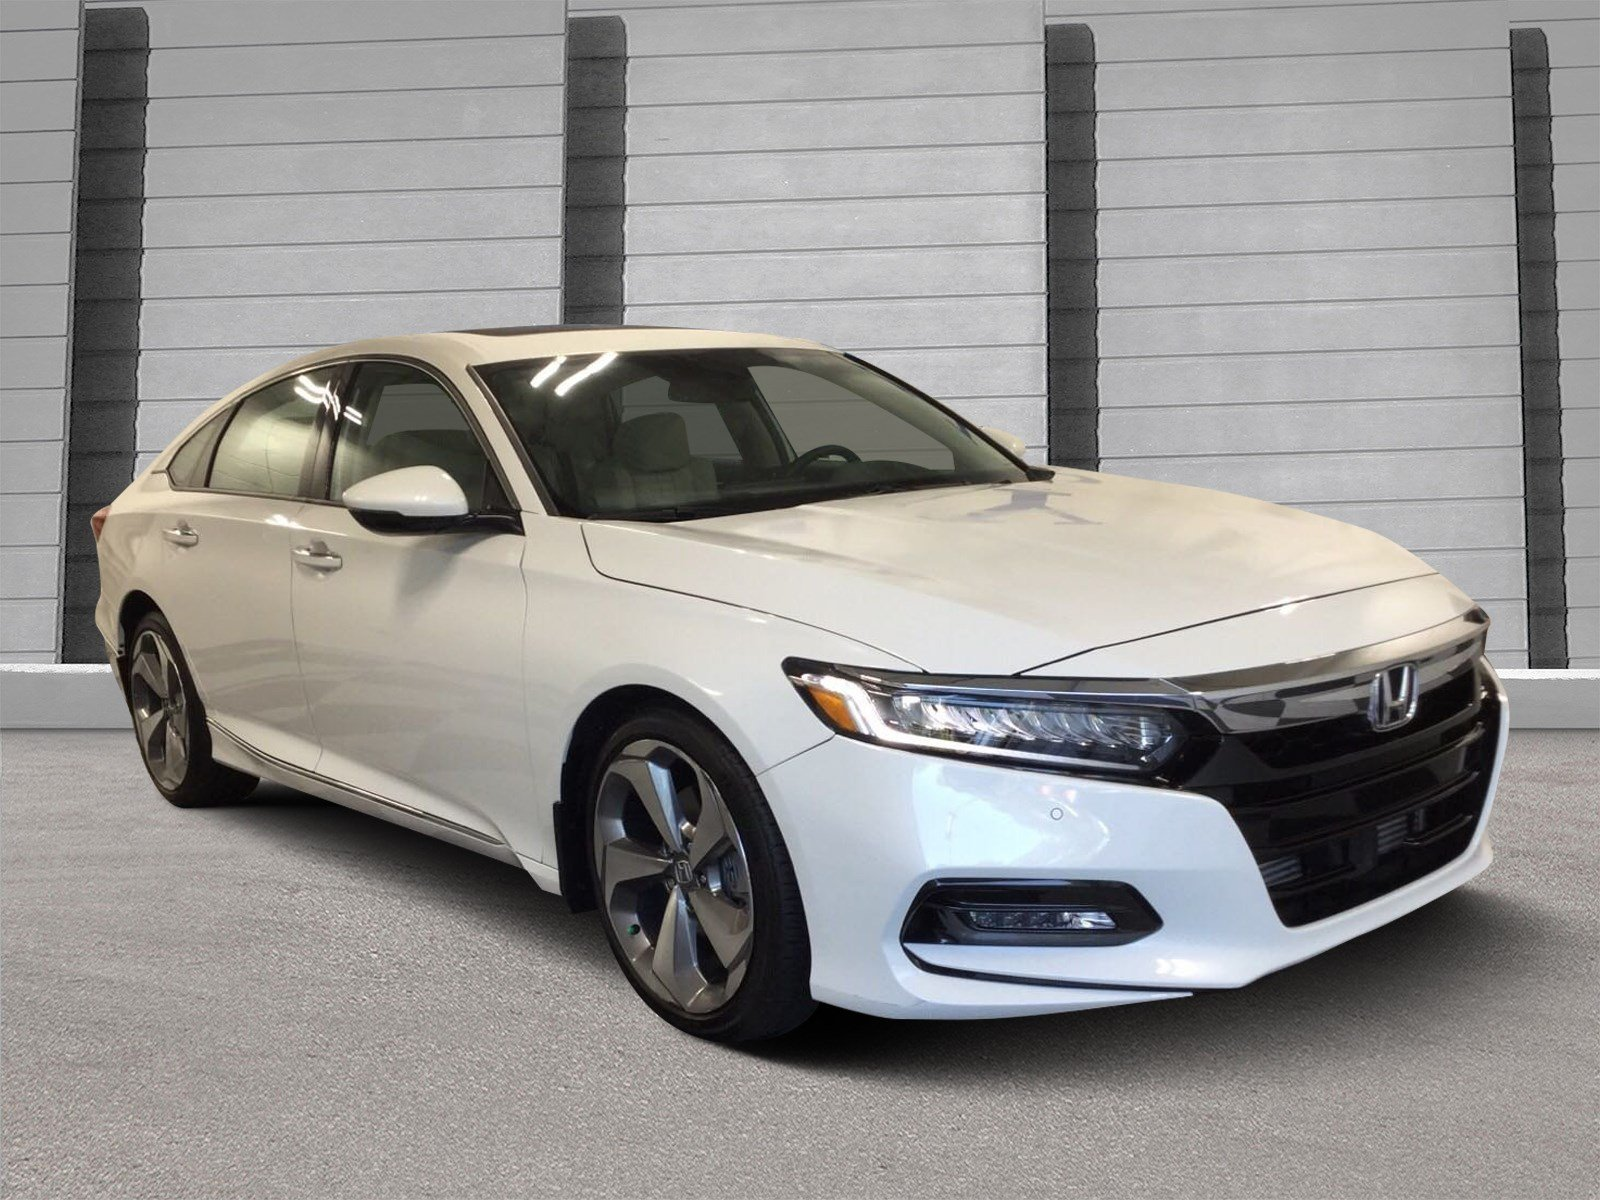 Superb Pre Owned 2018 Honda Accord Sedan Touring 1.5T